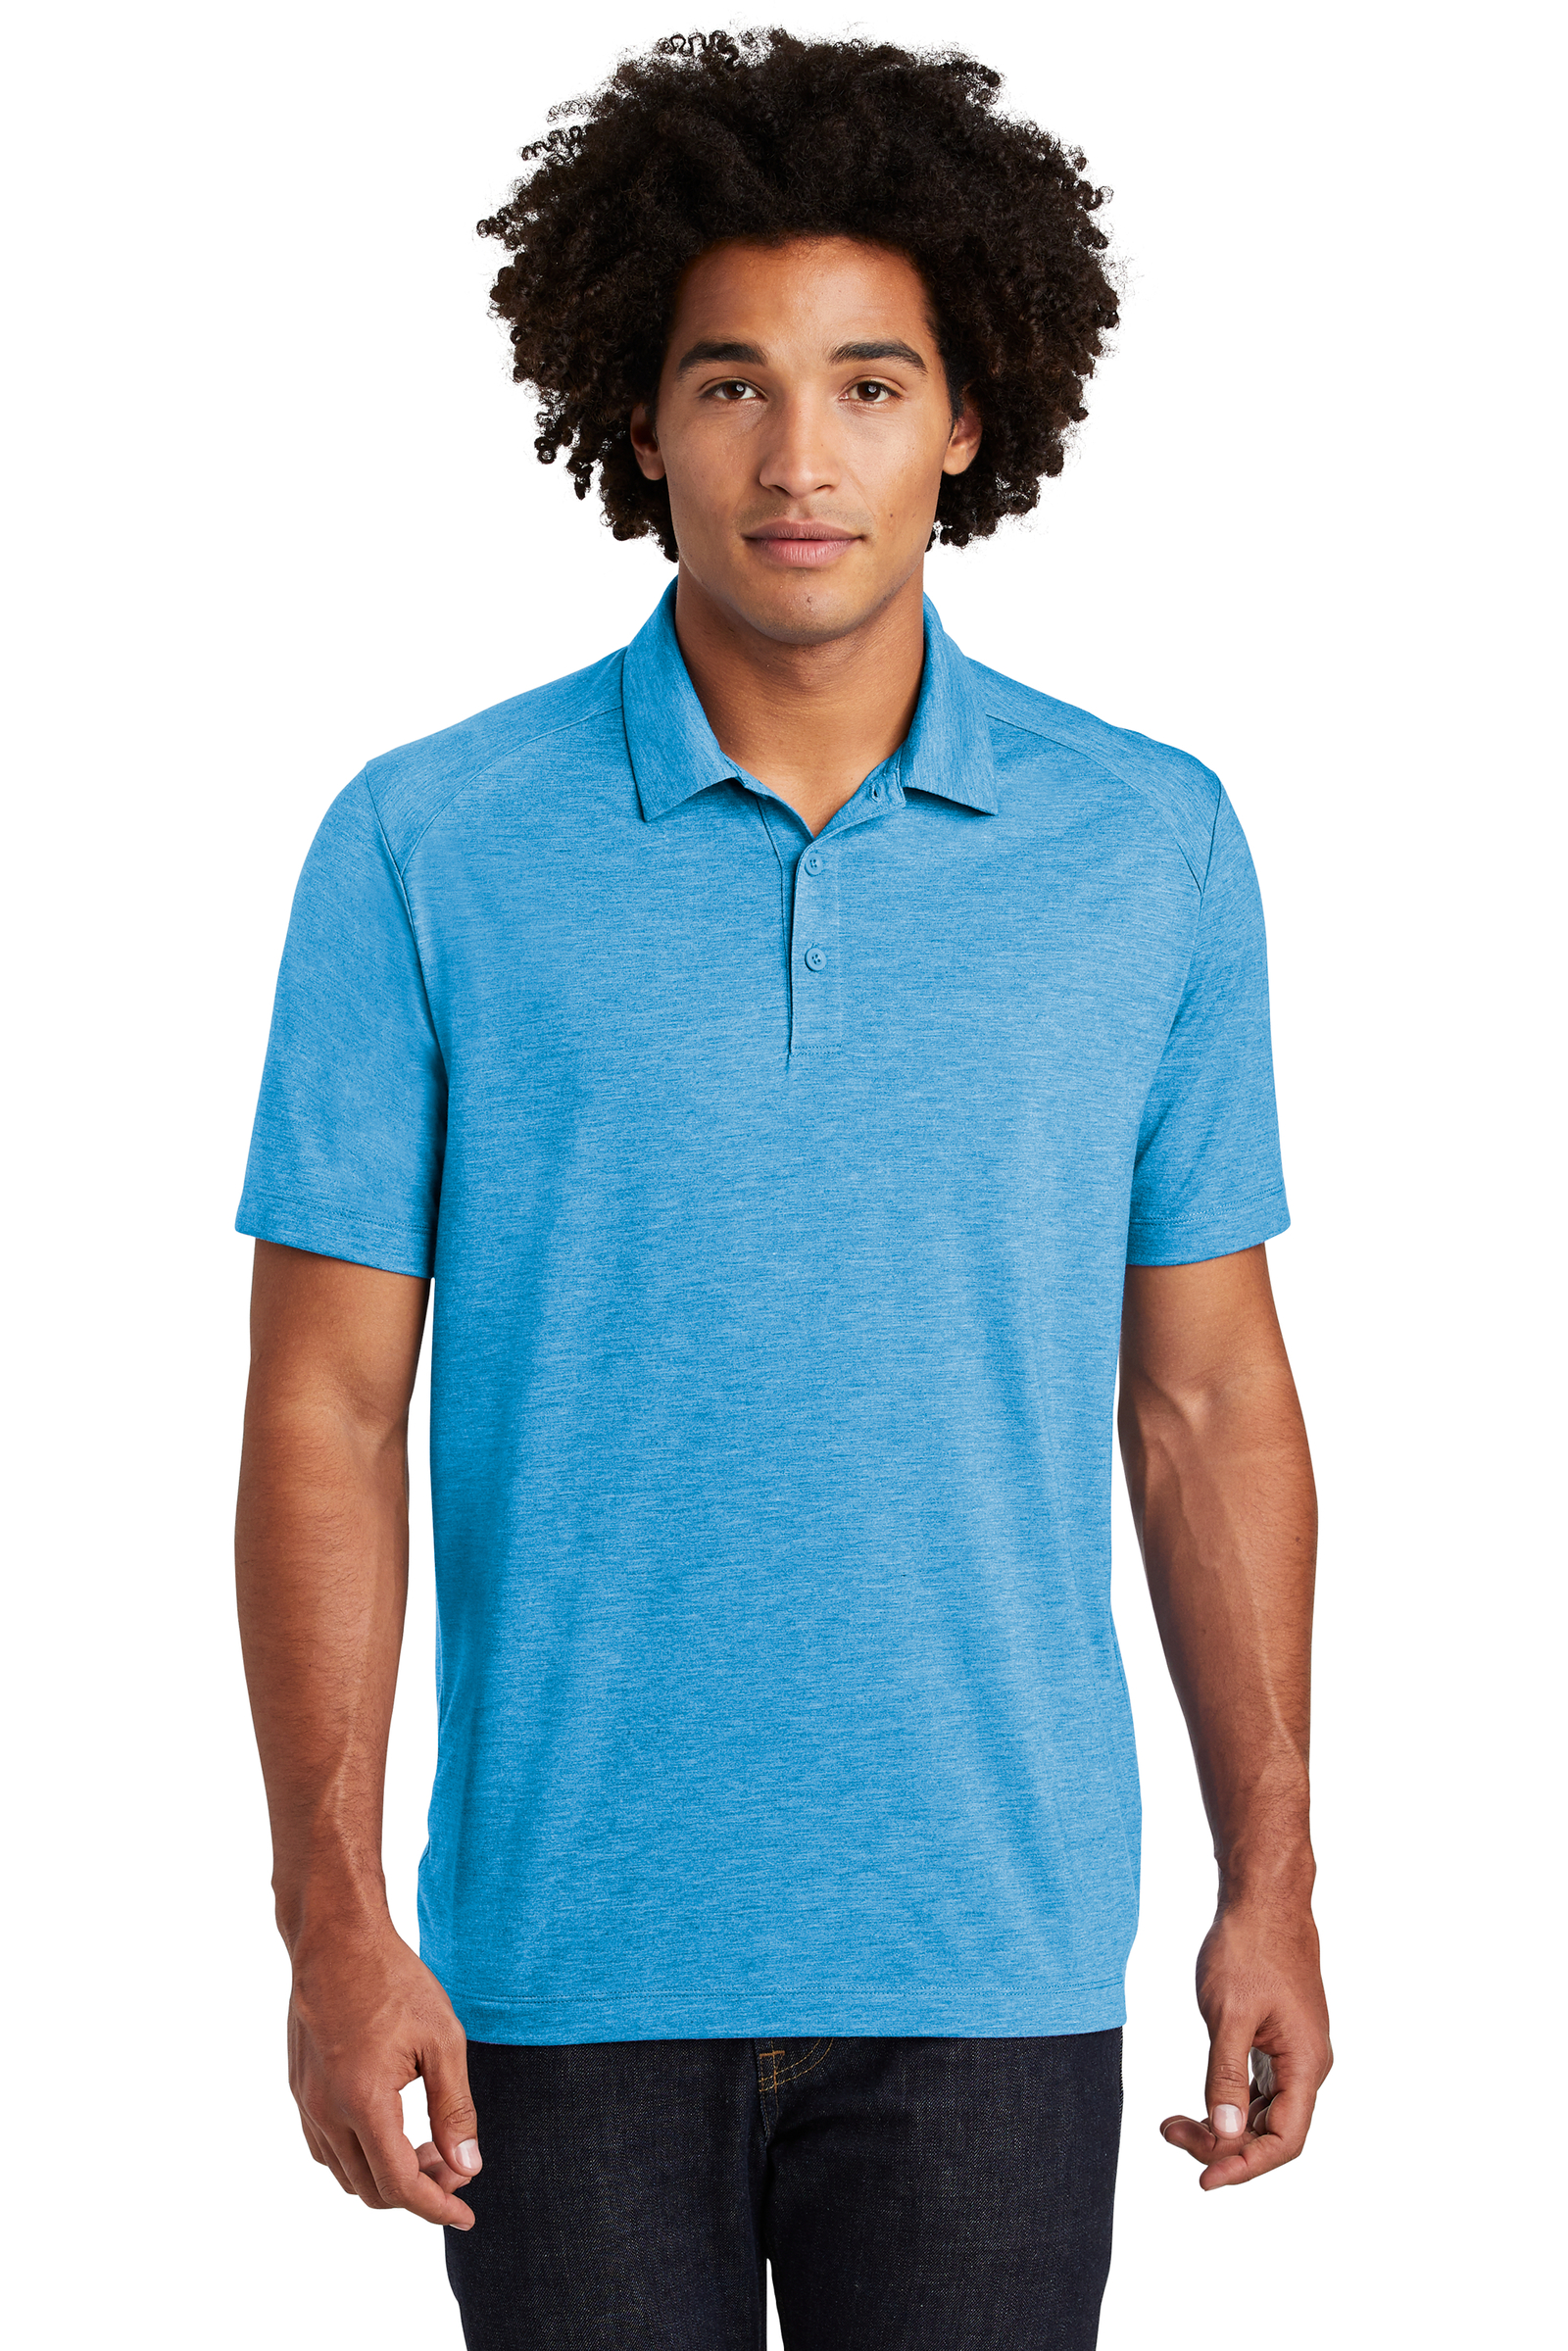 Sport-Tek Embroidered Men's PosiCharge Tri-Blend Wicking Polo